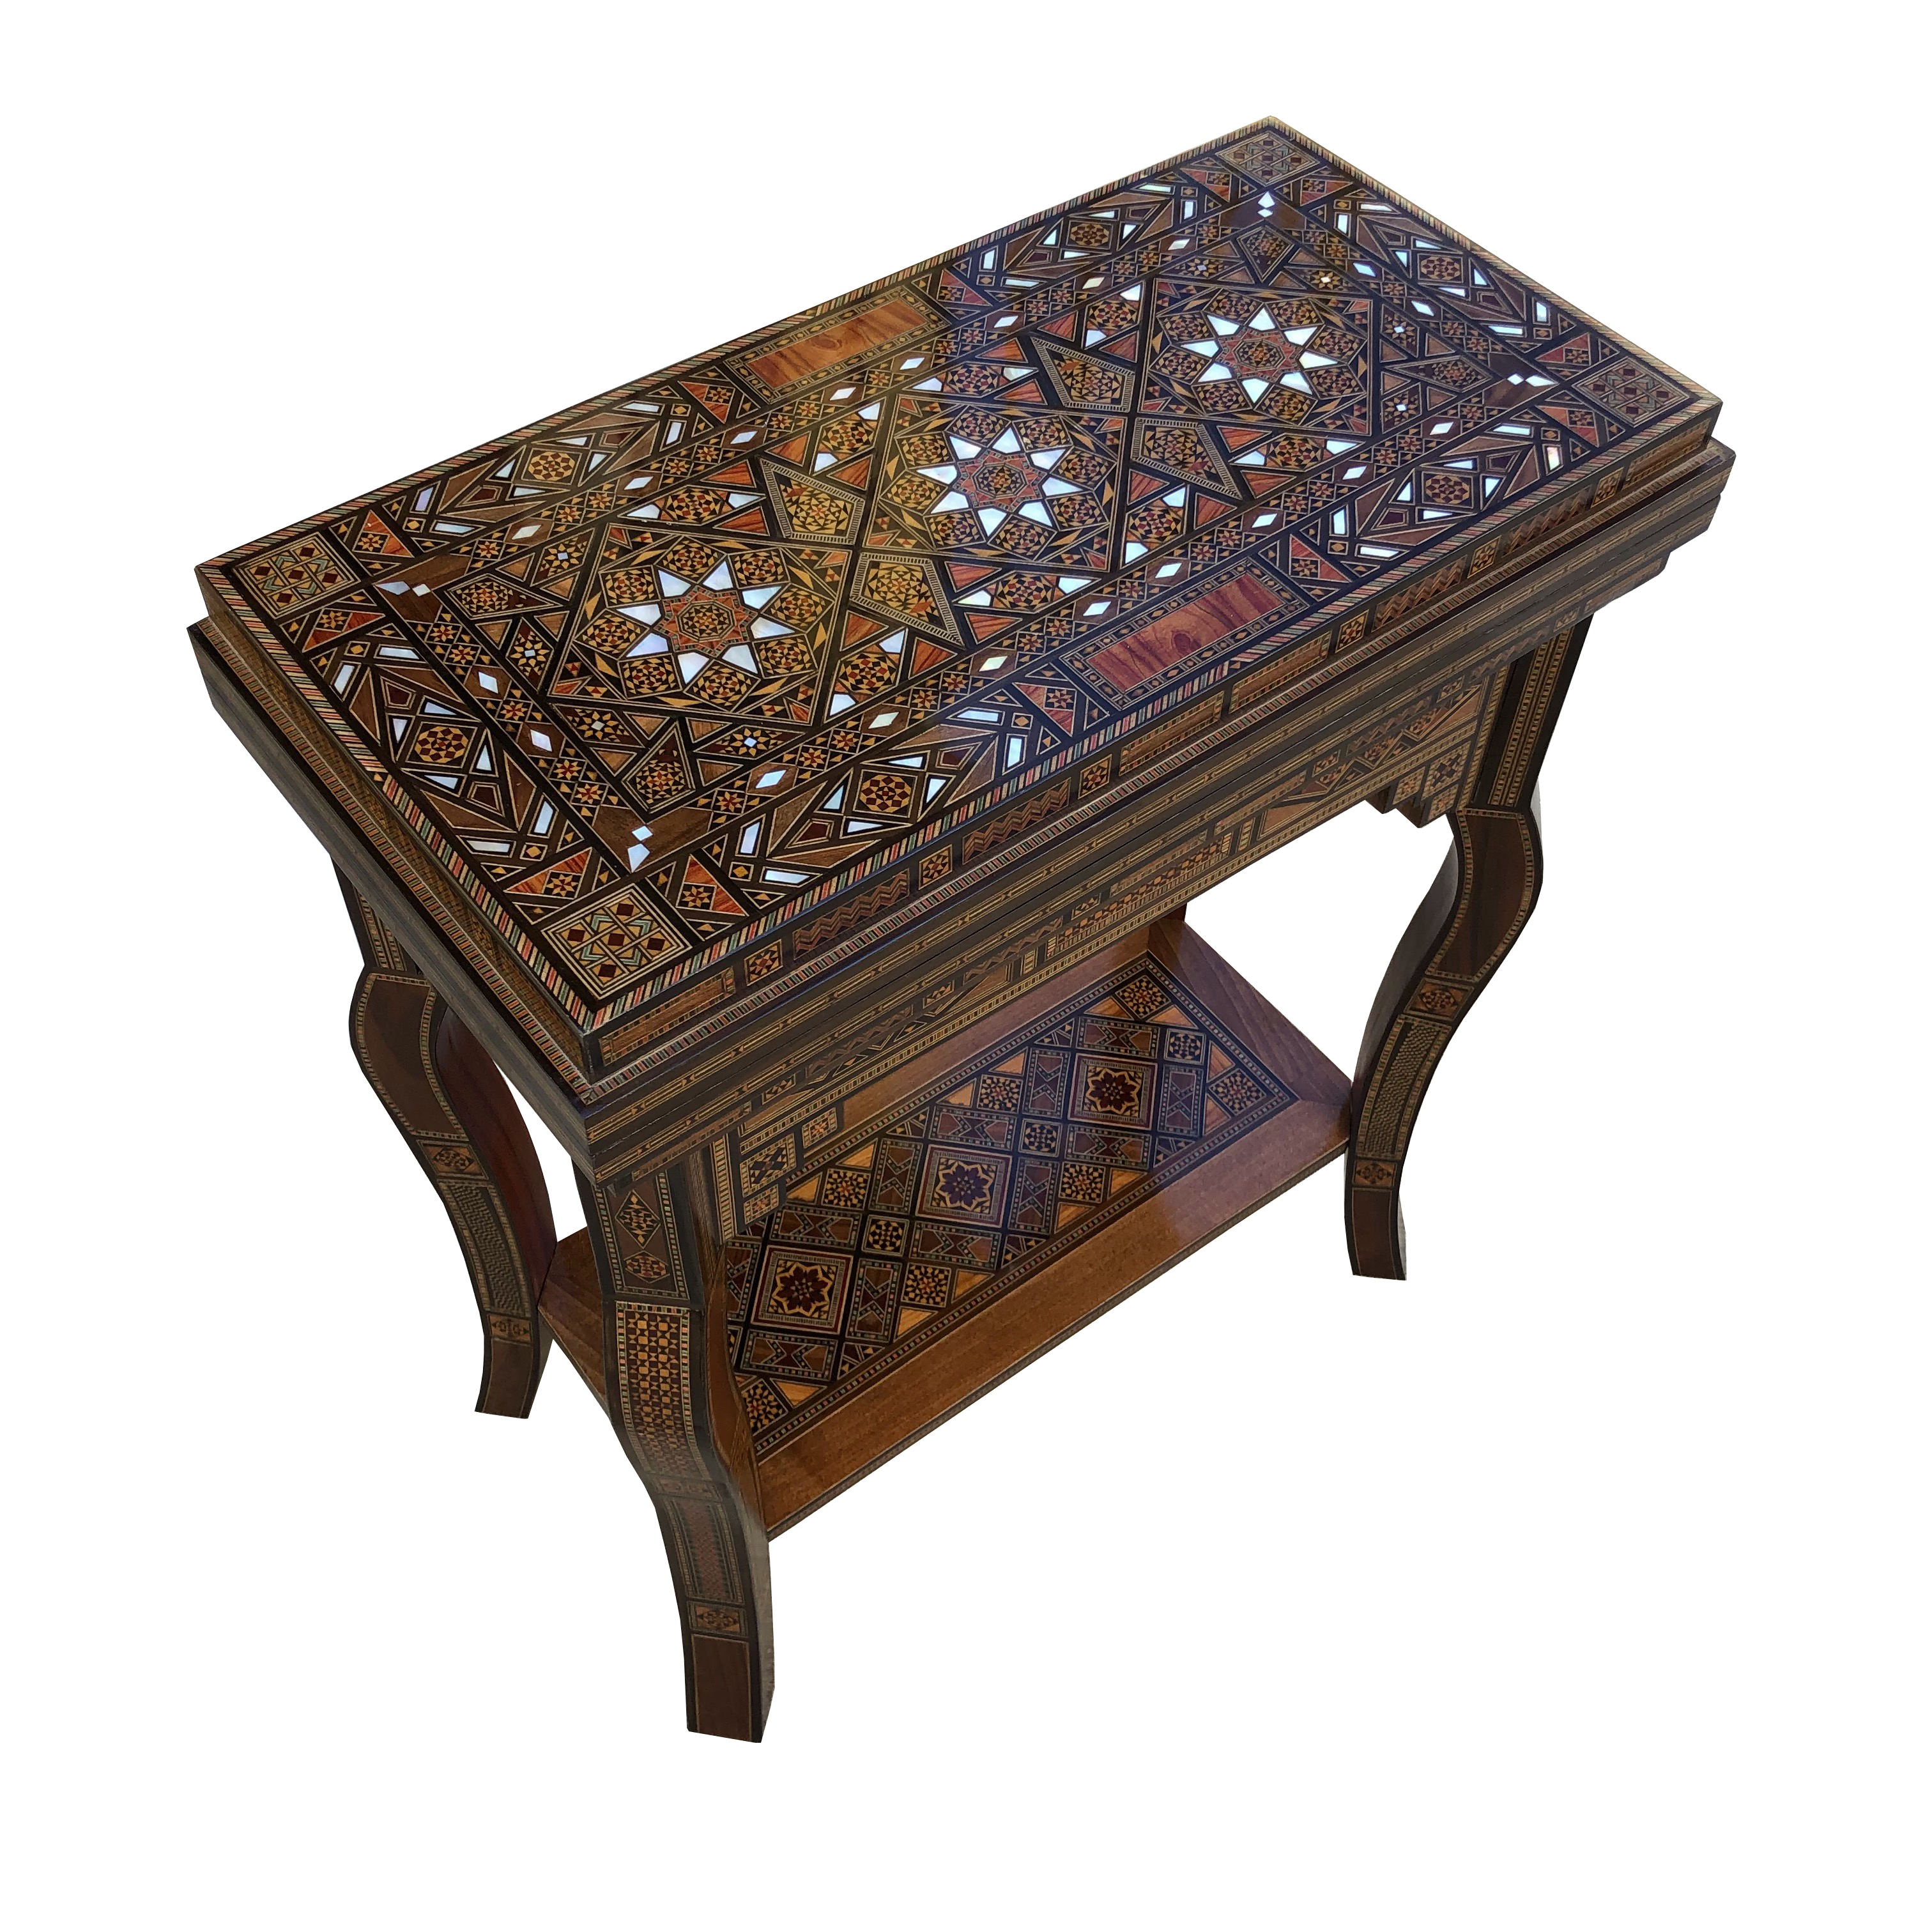 Folding Syrian game table